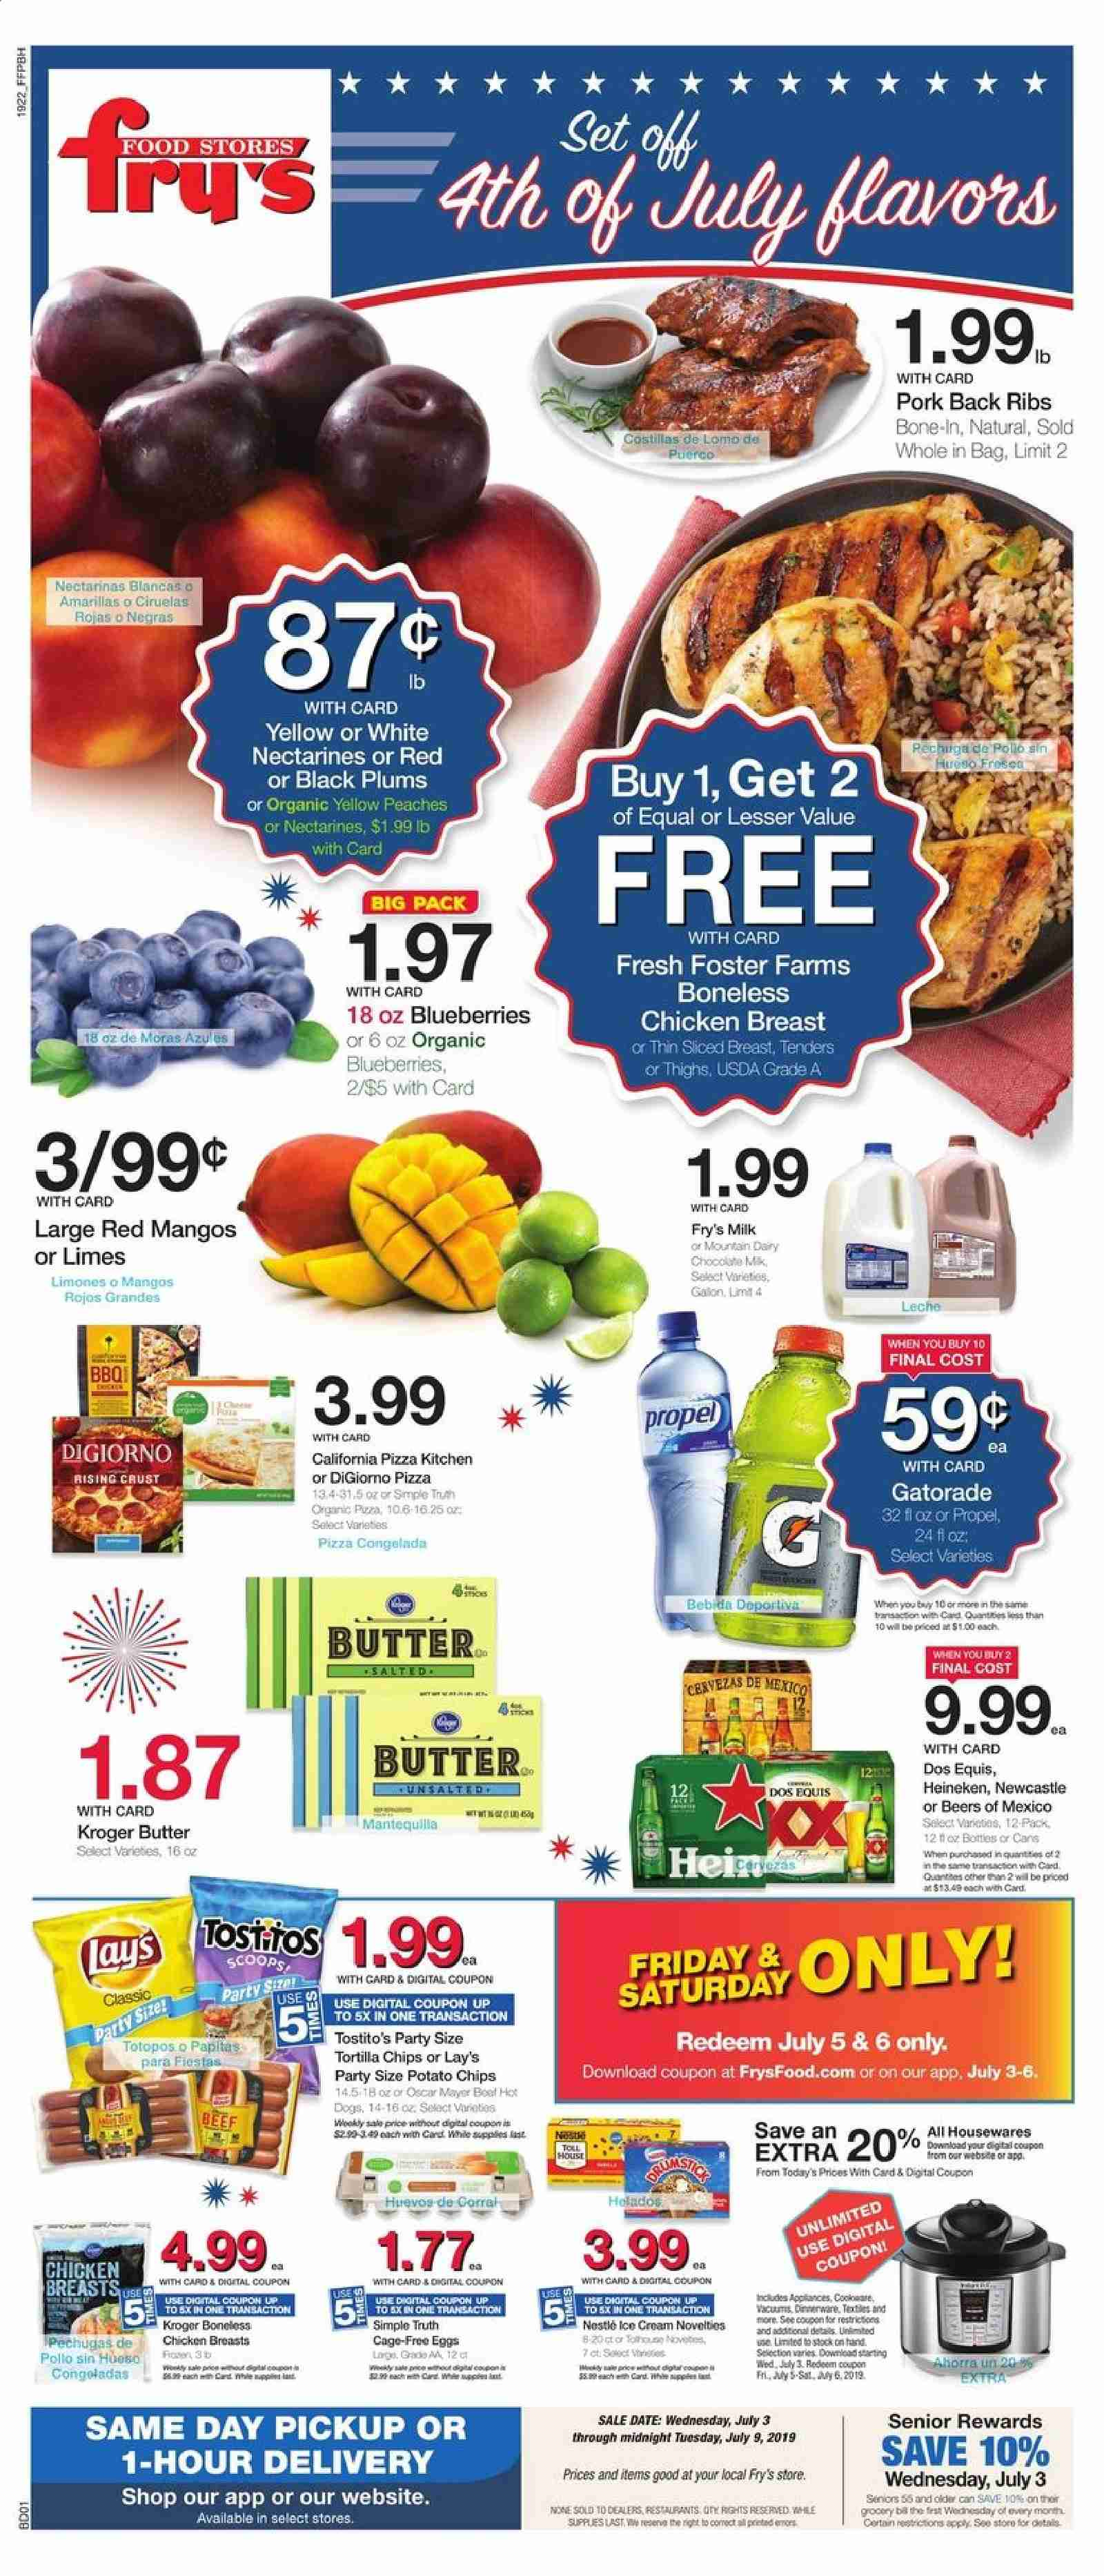 Fry's Flyer - 07.03.2019 - 07.09.2019 - Sales products - Dos Equis, blueberries, limes, mango, nectarines, plums, peache, hot dog, pizza, milk, eggs, butter, chocolate, tortilla chips, potato chips, chips, Lay's, chicken, chicken breast, beef meat, pork meat, dinnerware set, ribs, hot dogs. Page 1.